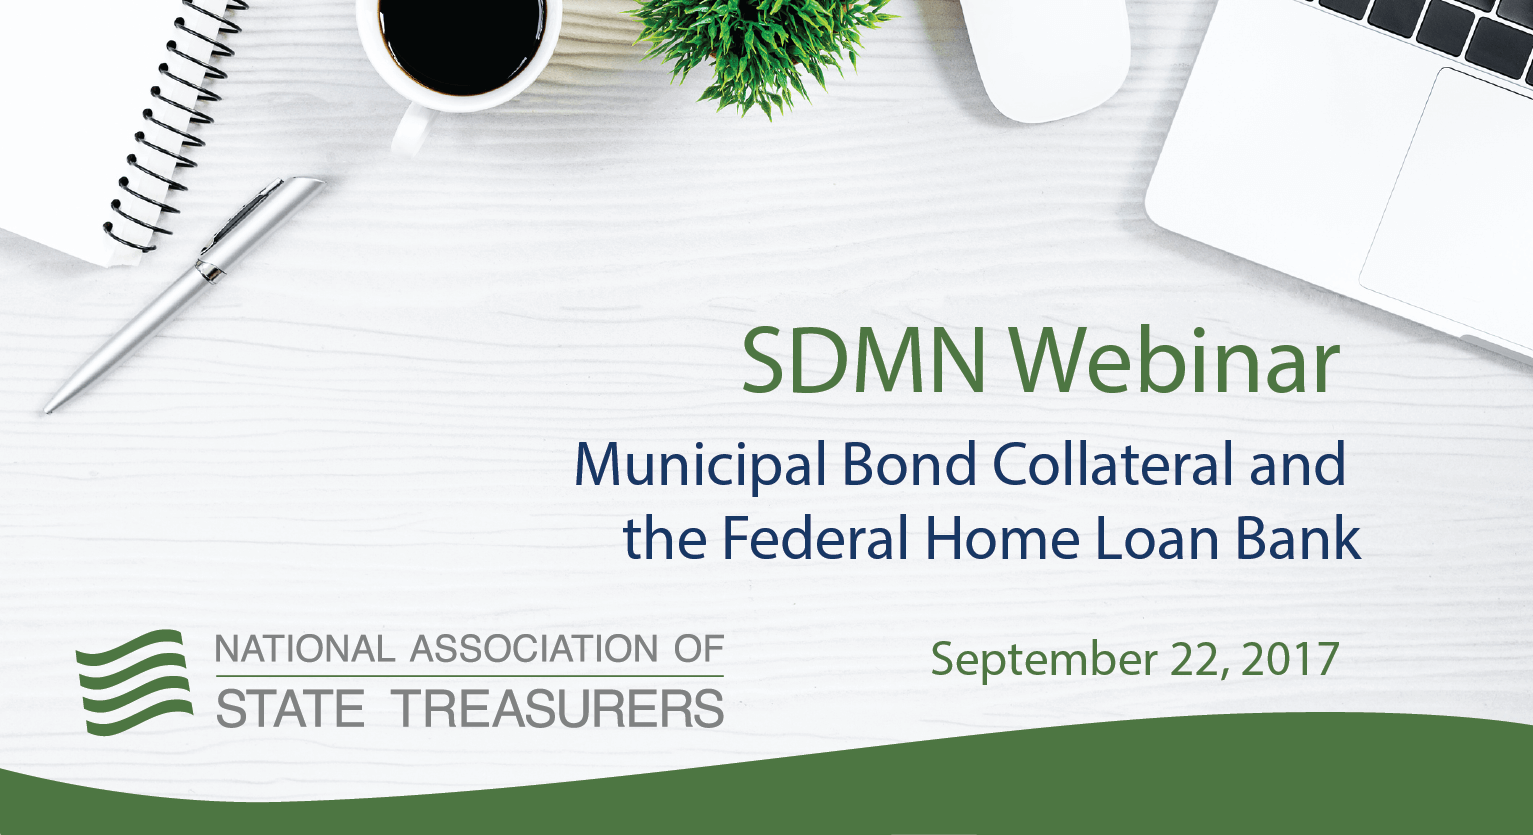 Municipal Bond Collateral and the Federal Home Loan Bank